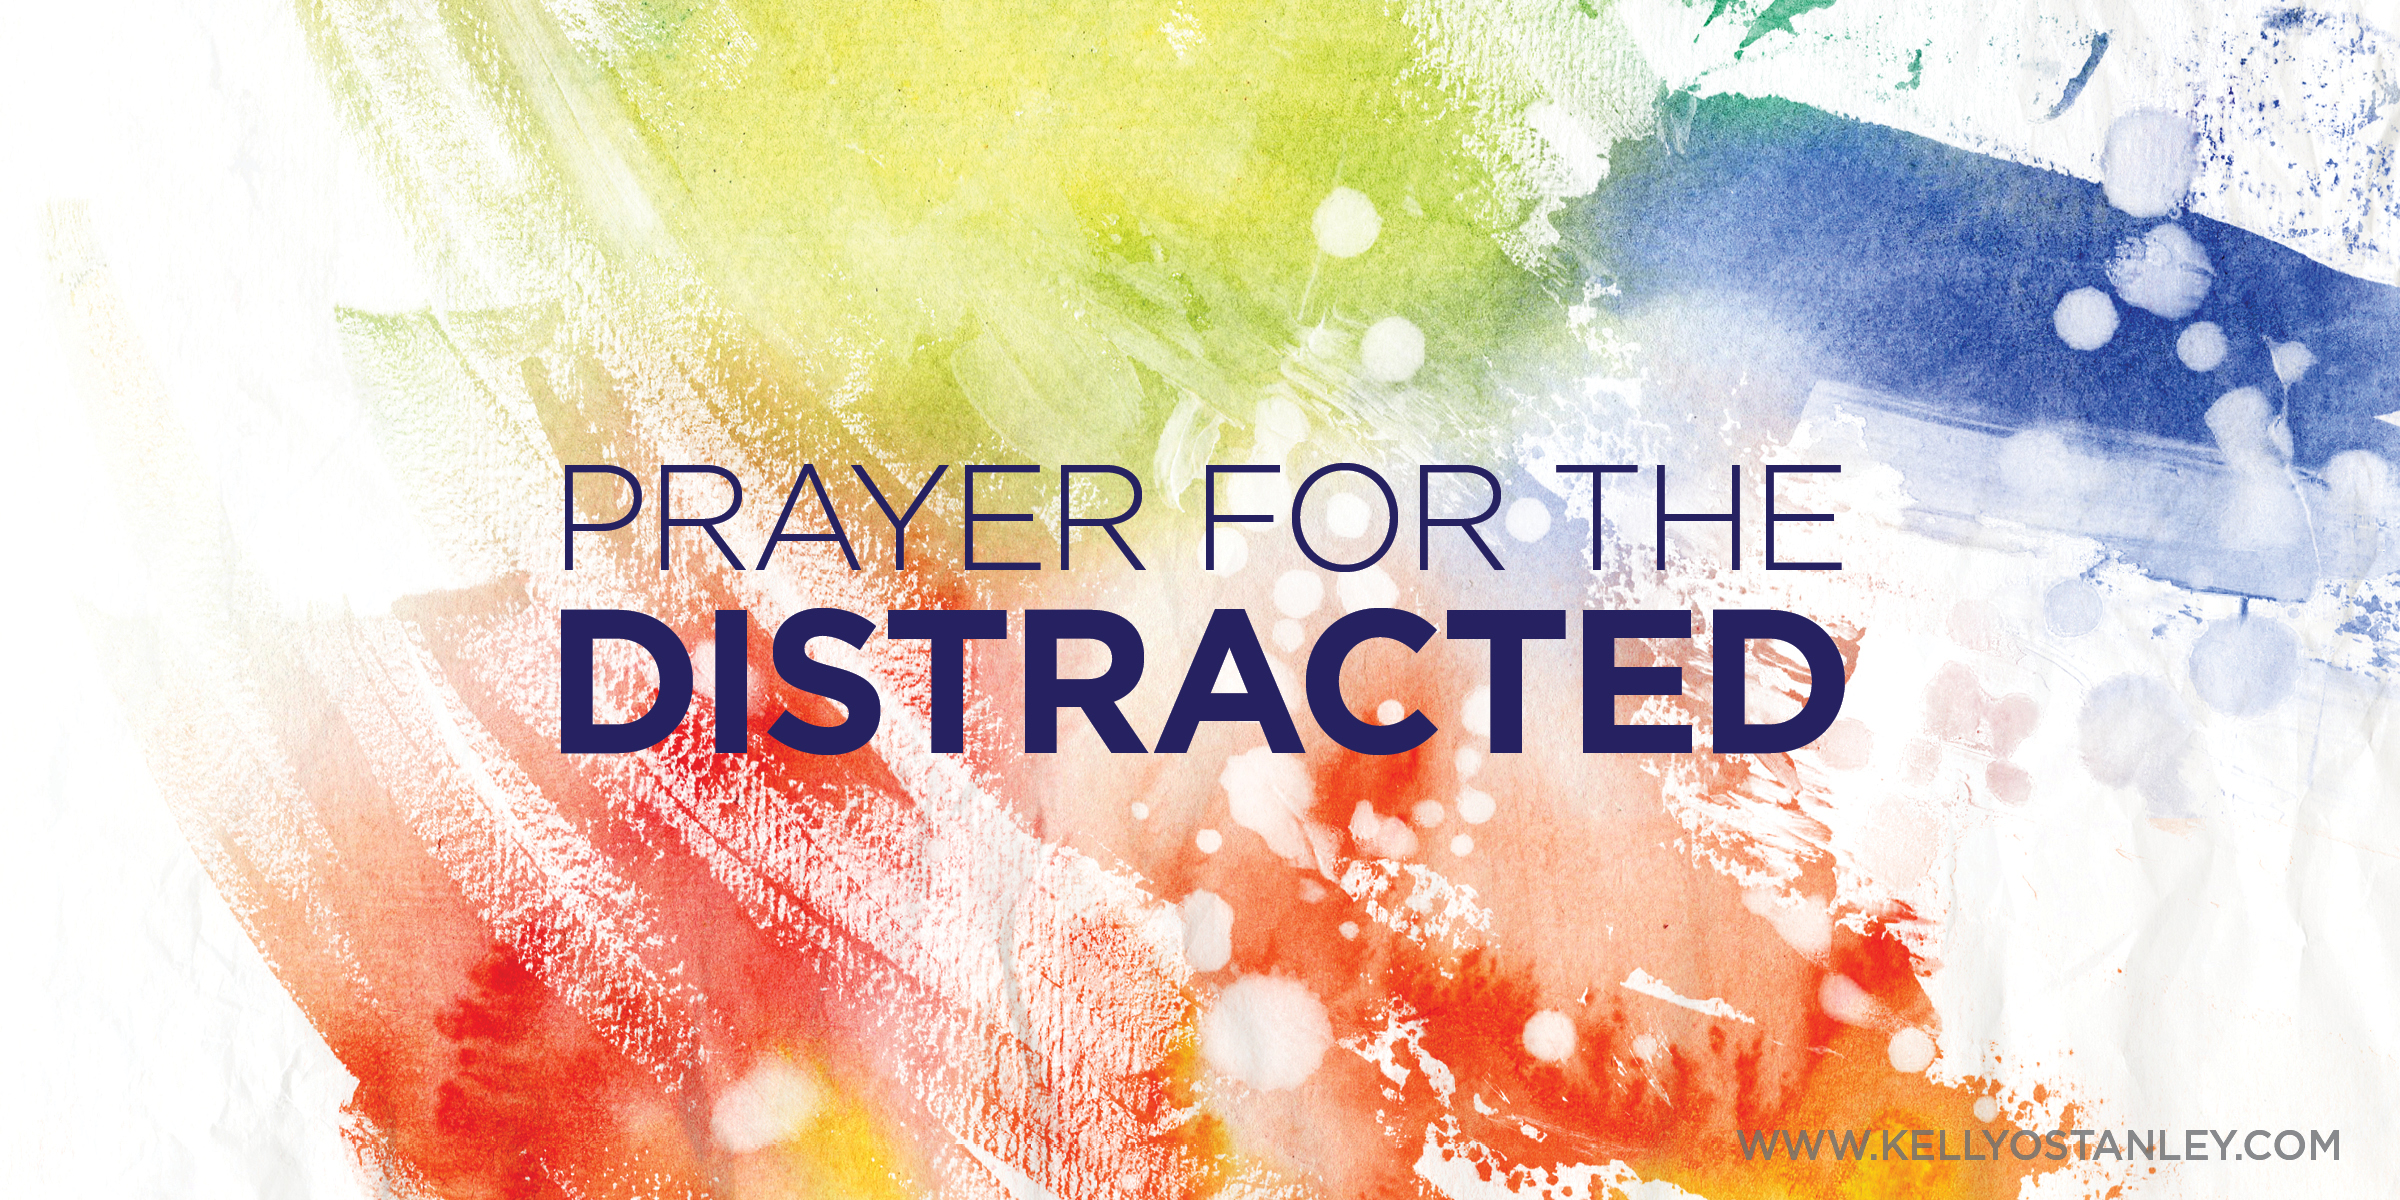 Prayer for the Distracted